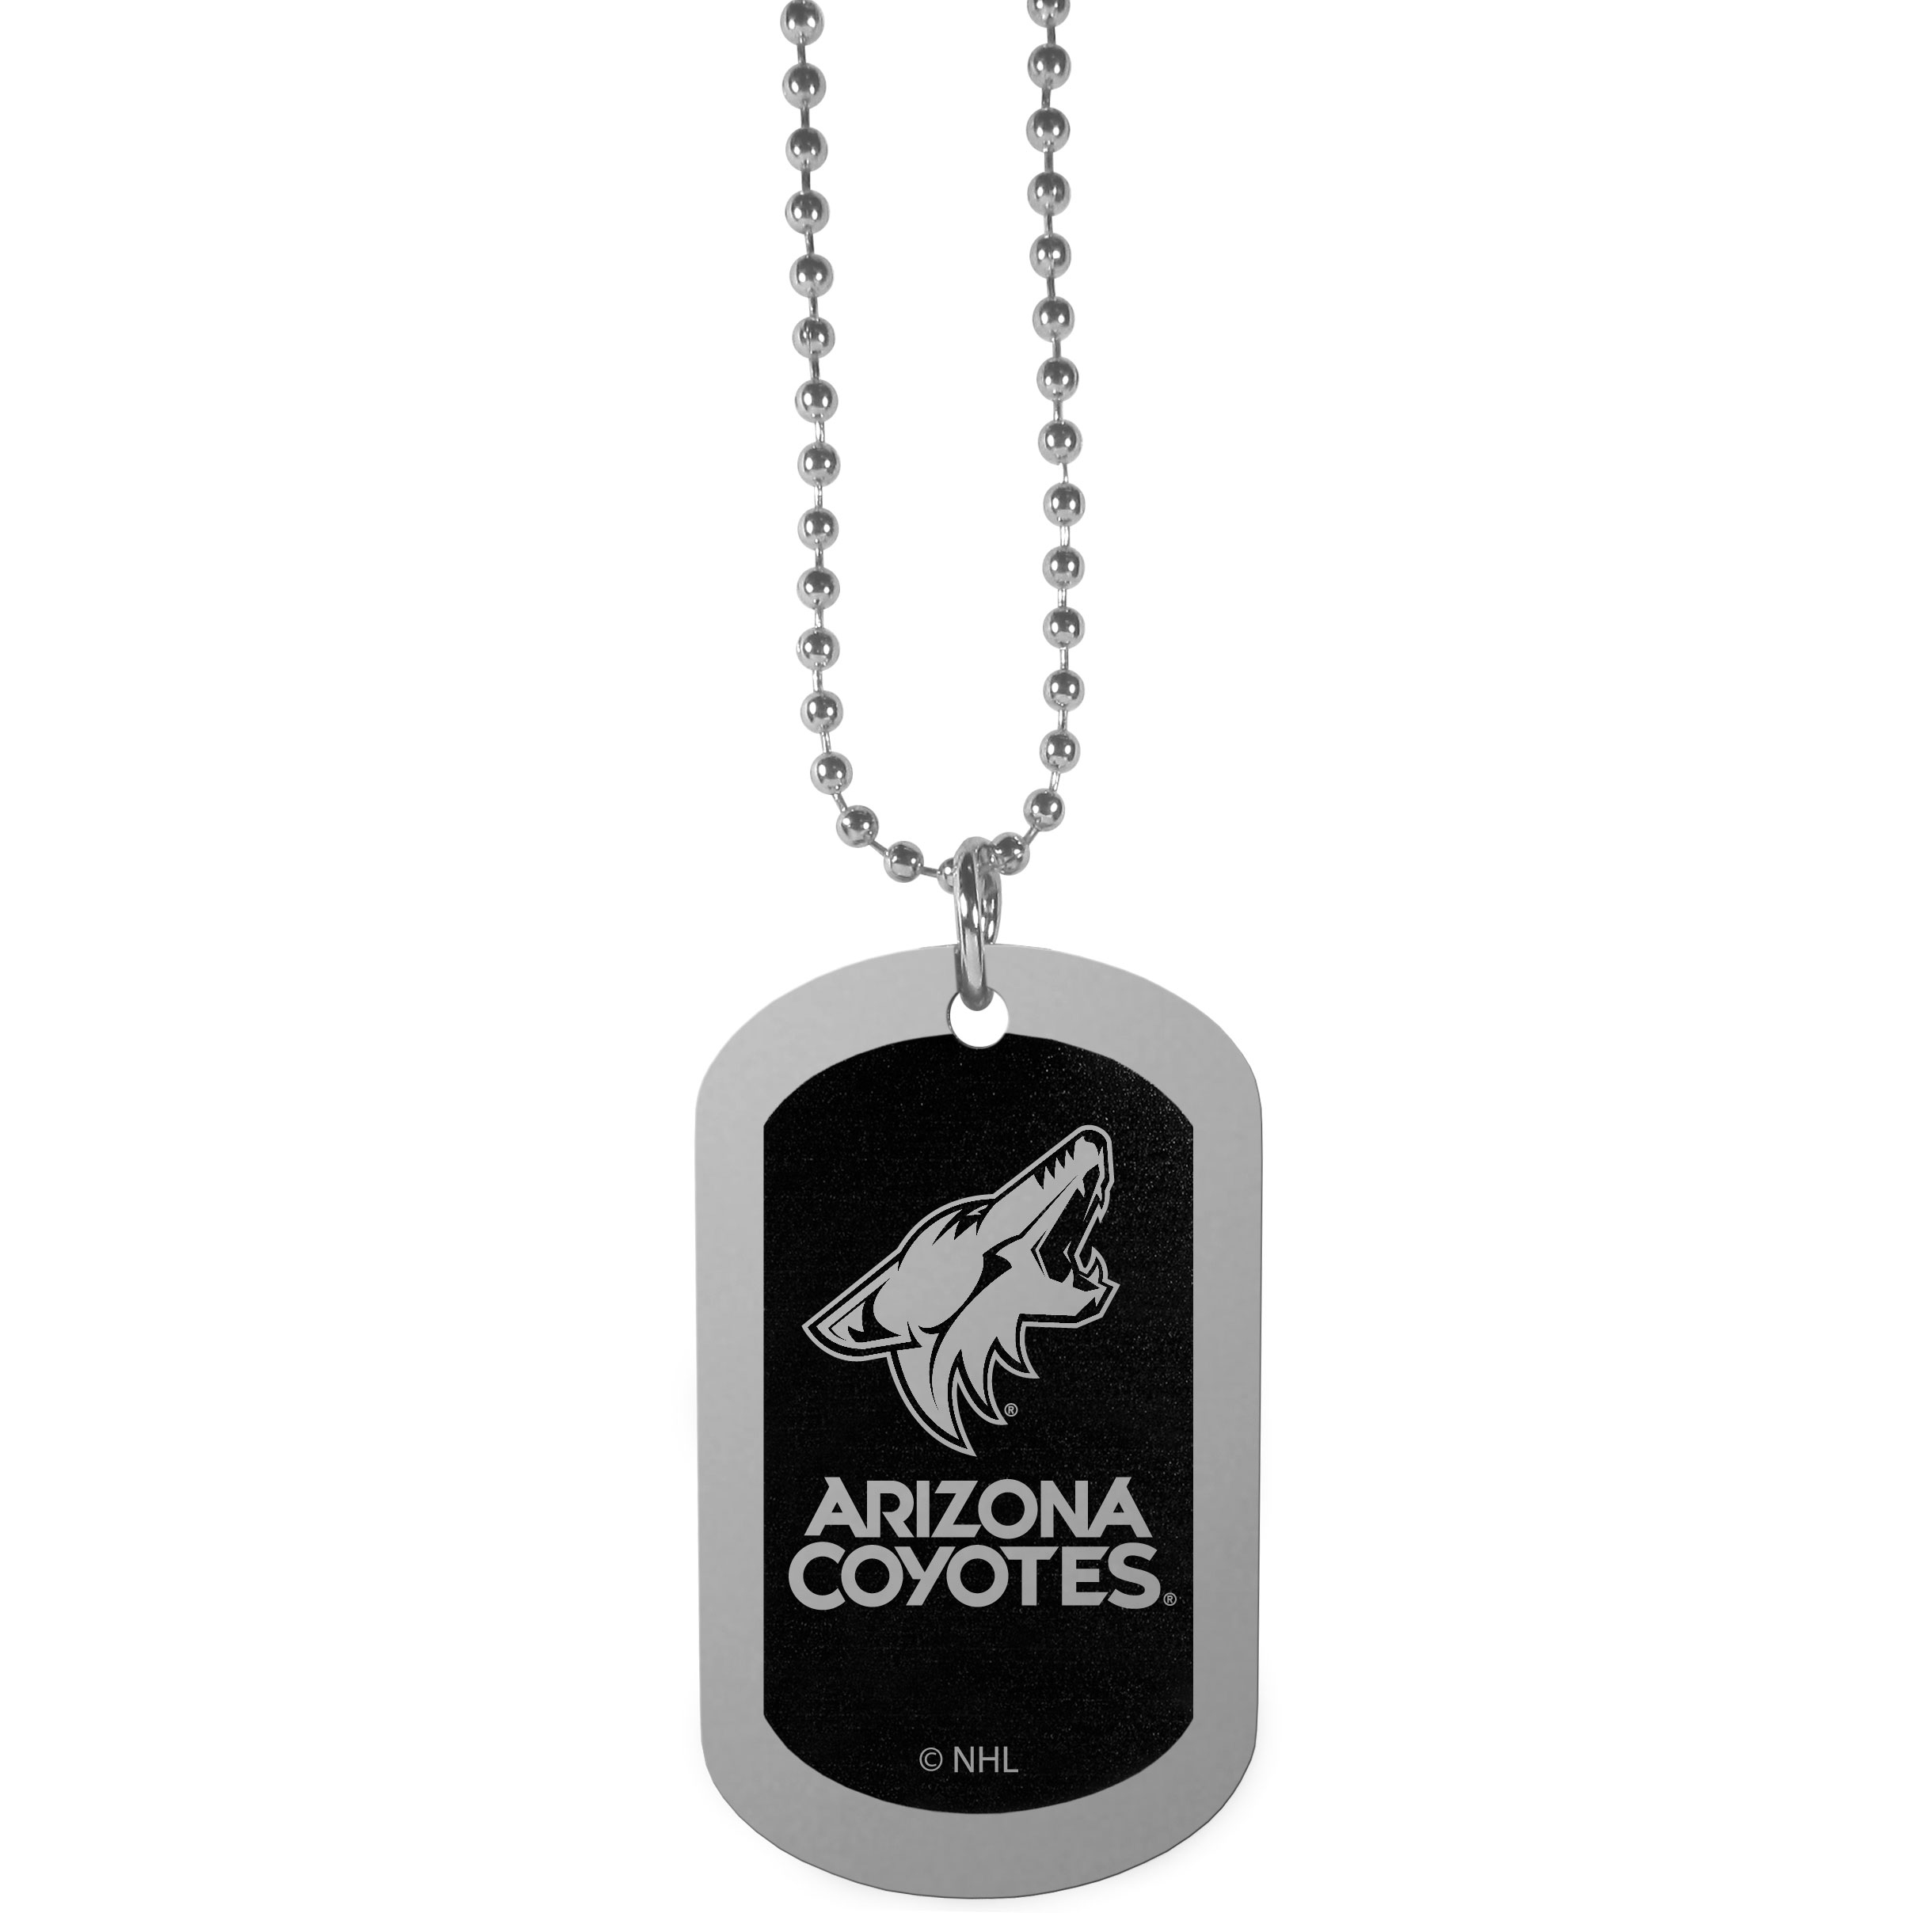 Arizona Coyotes® Chrome Tag Necklace - Dog tag necklaces are a fashion statement that is here to stay. The sporty version of the classic tag features a black printed over a high polish tag to create a bold and sporty look. The tag comes on a 26 inch ball chain with a ball and joint clasp. Any Arizona Coyotes® would be proud to wear this attractive fashion accessory.